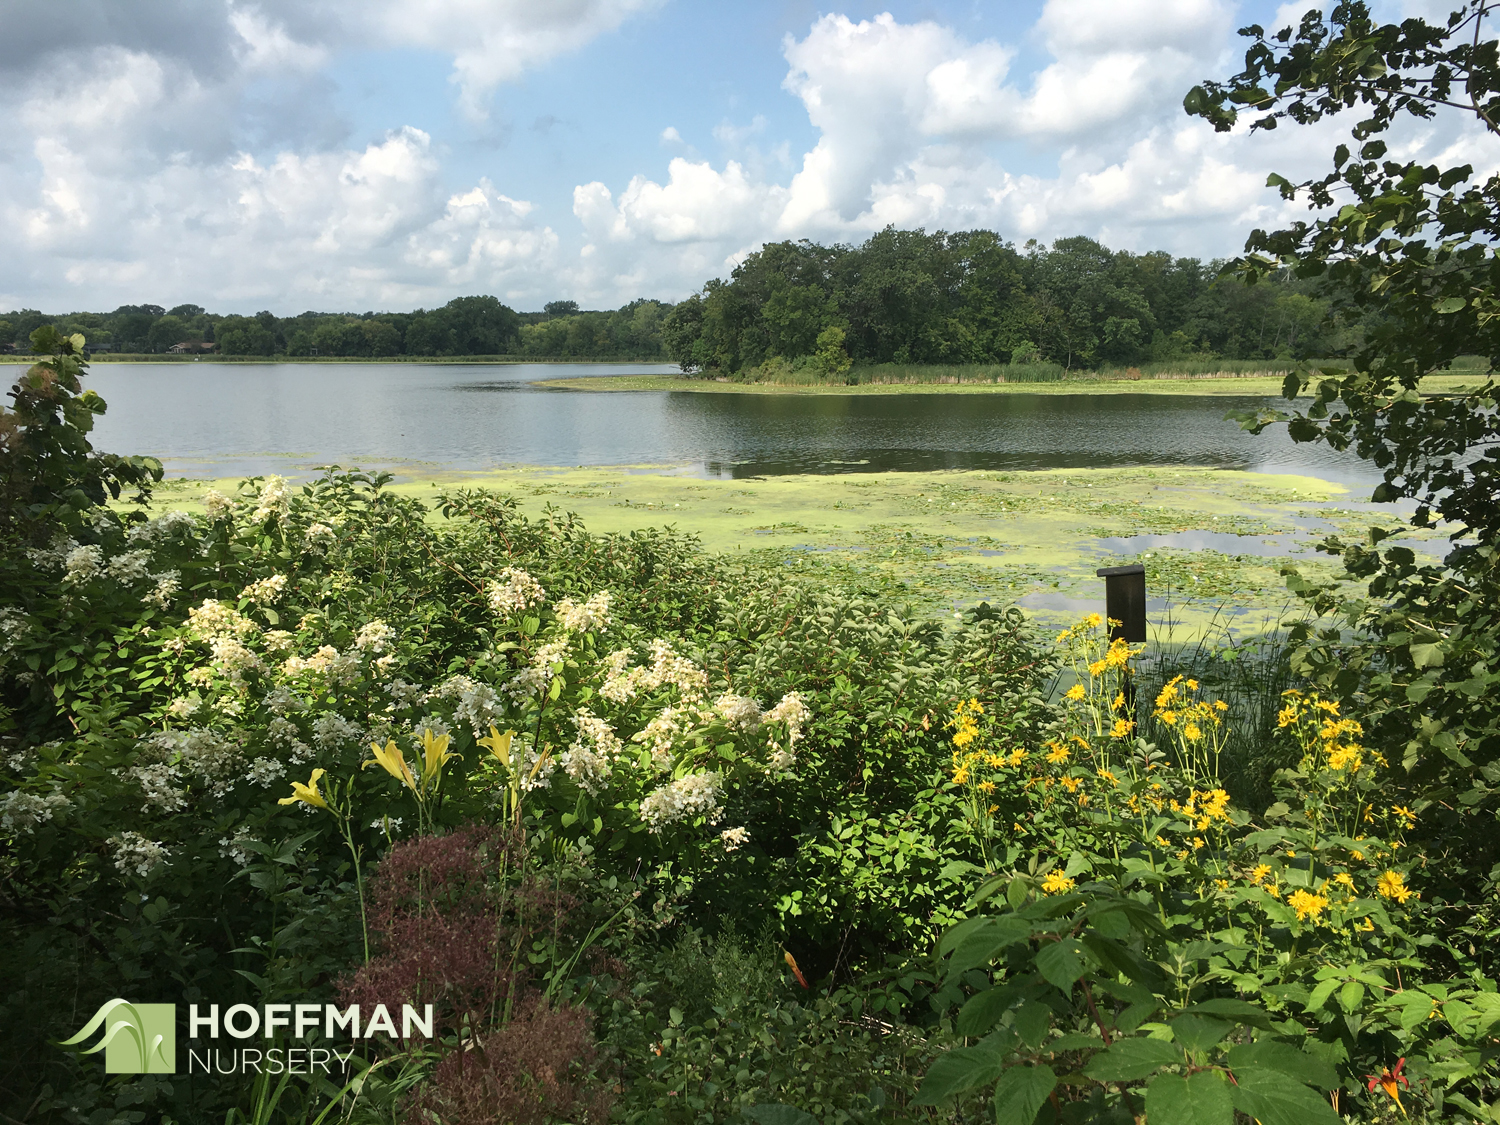 The lakes in Minnesota offer beautiful views and opportunities for gardeners to help keep the lakes clean and healthy.